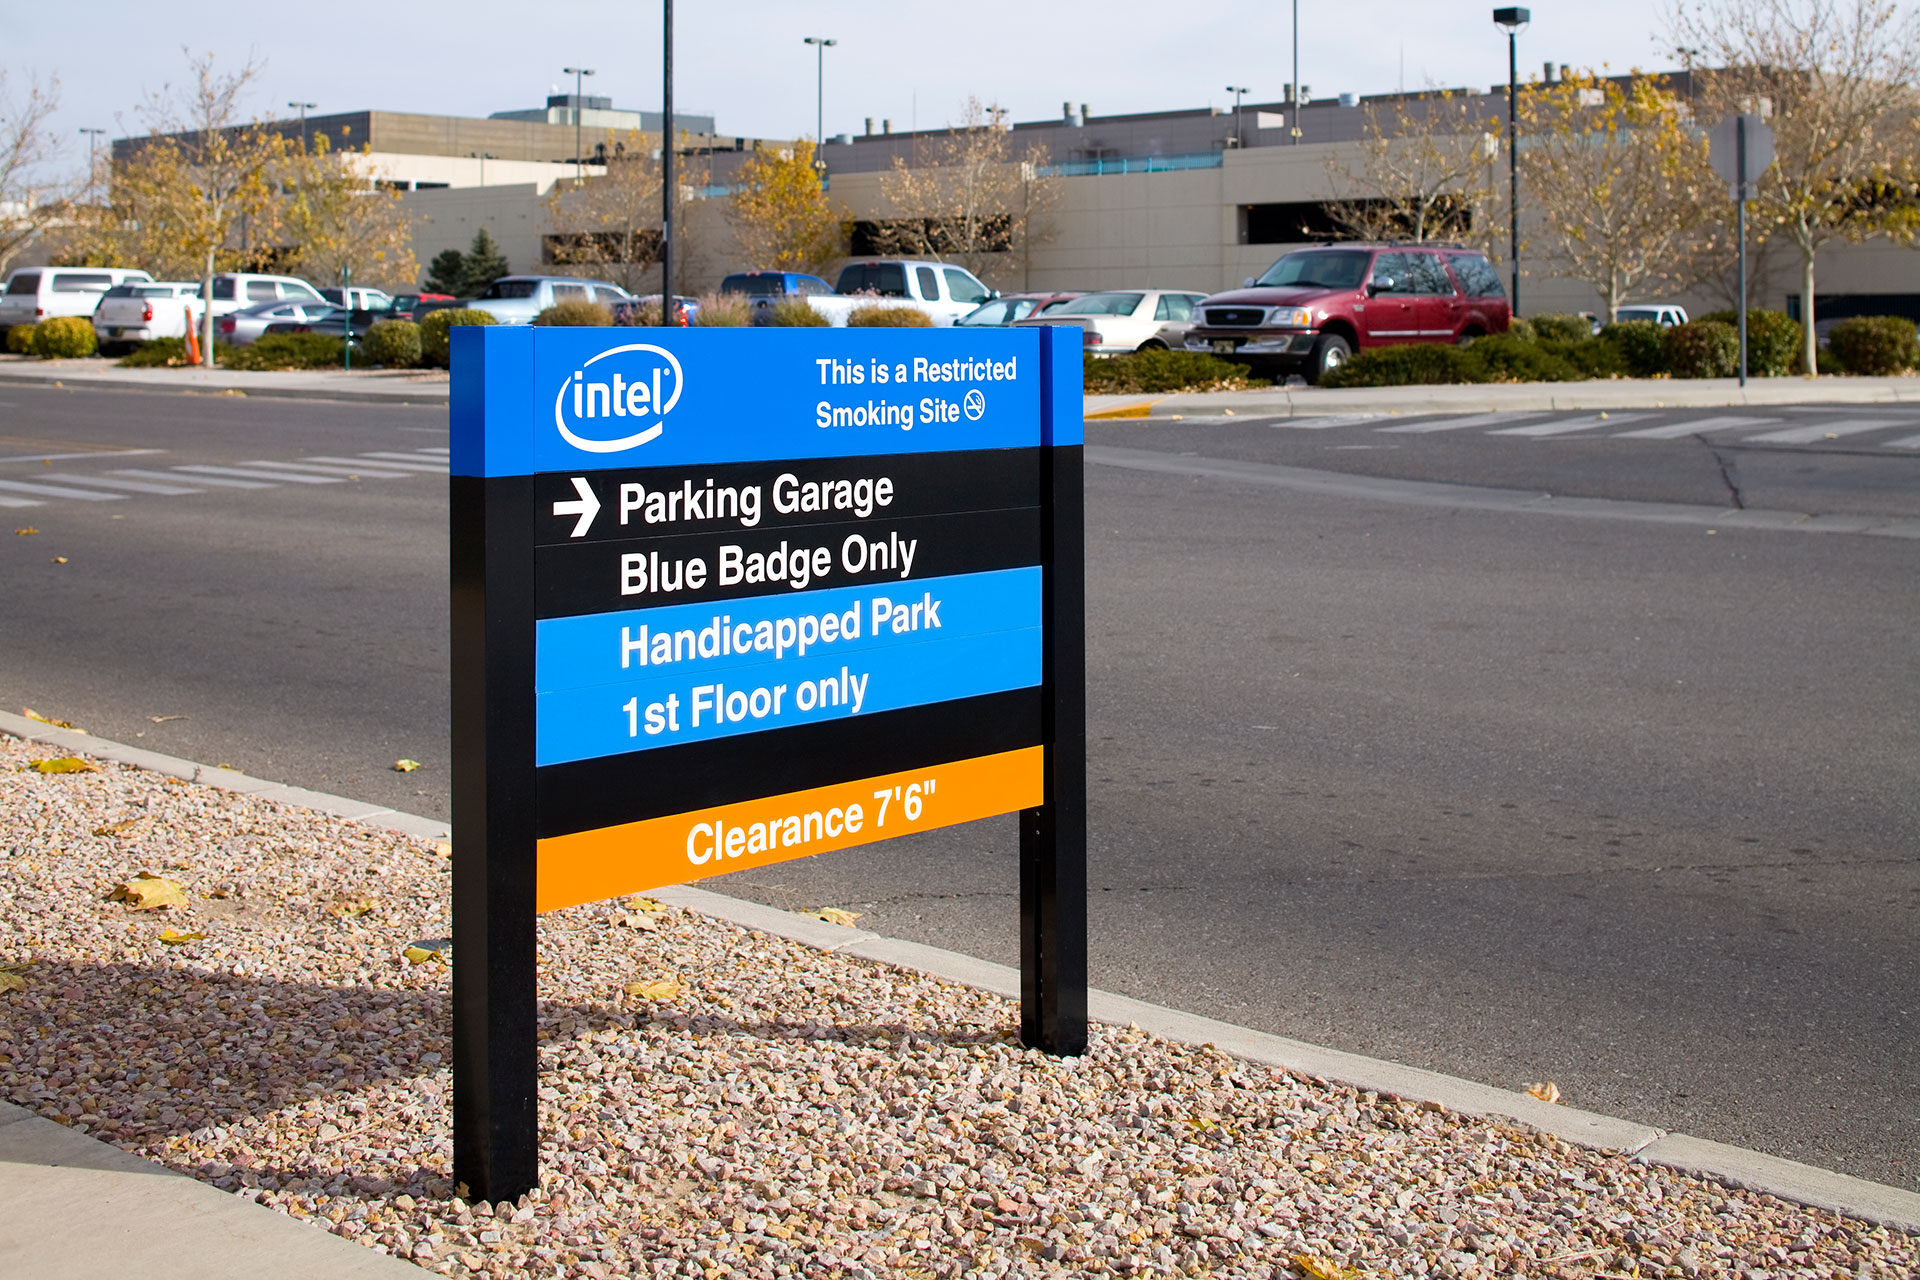 Intel Campus and Parking Garage Signage